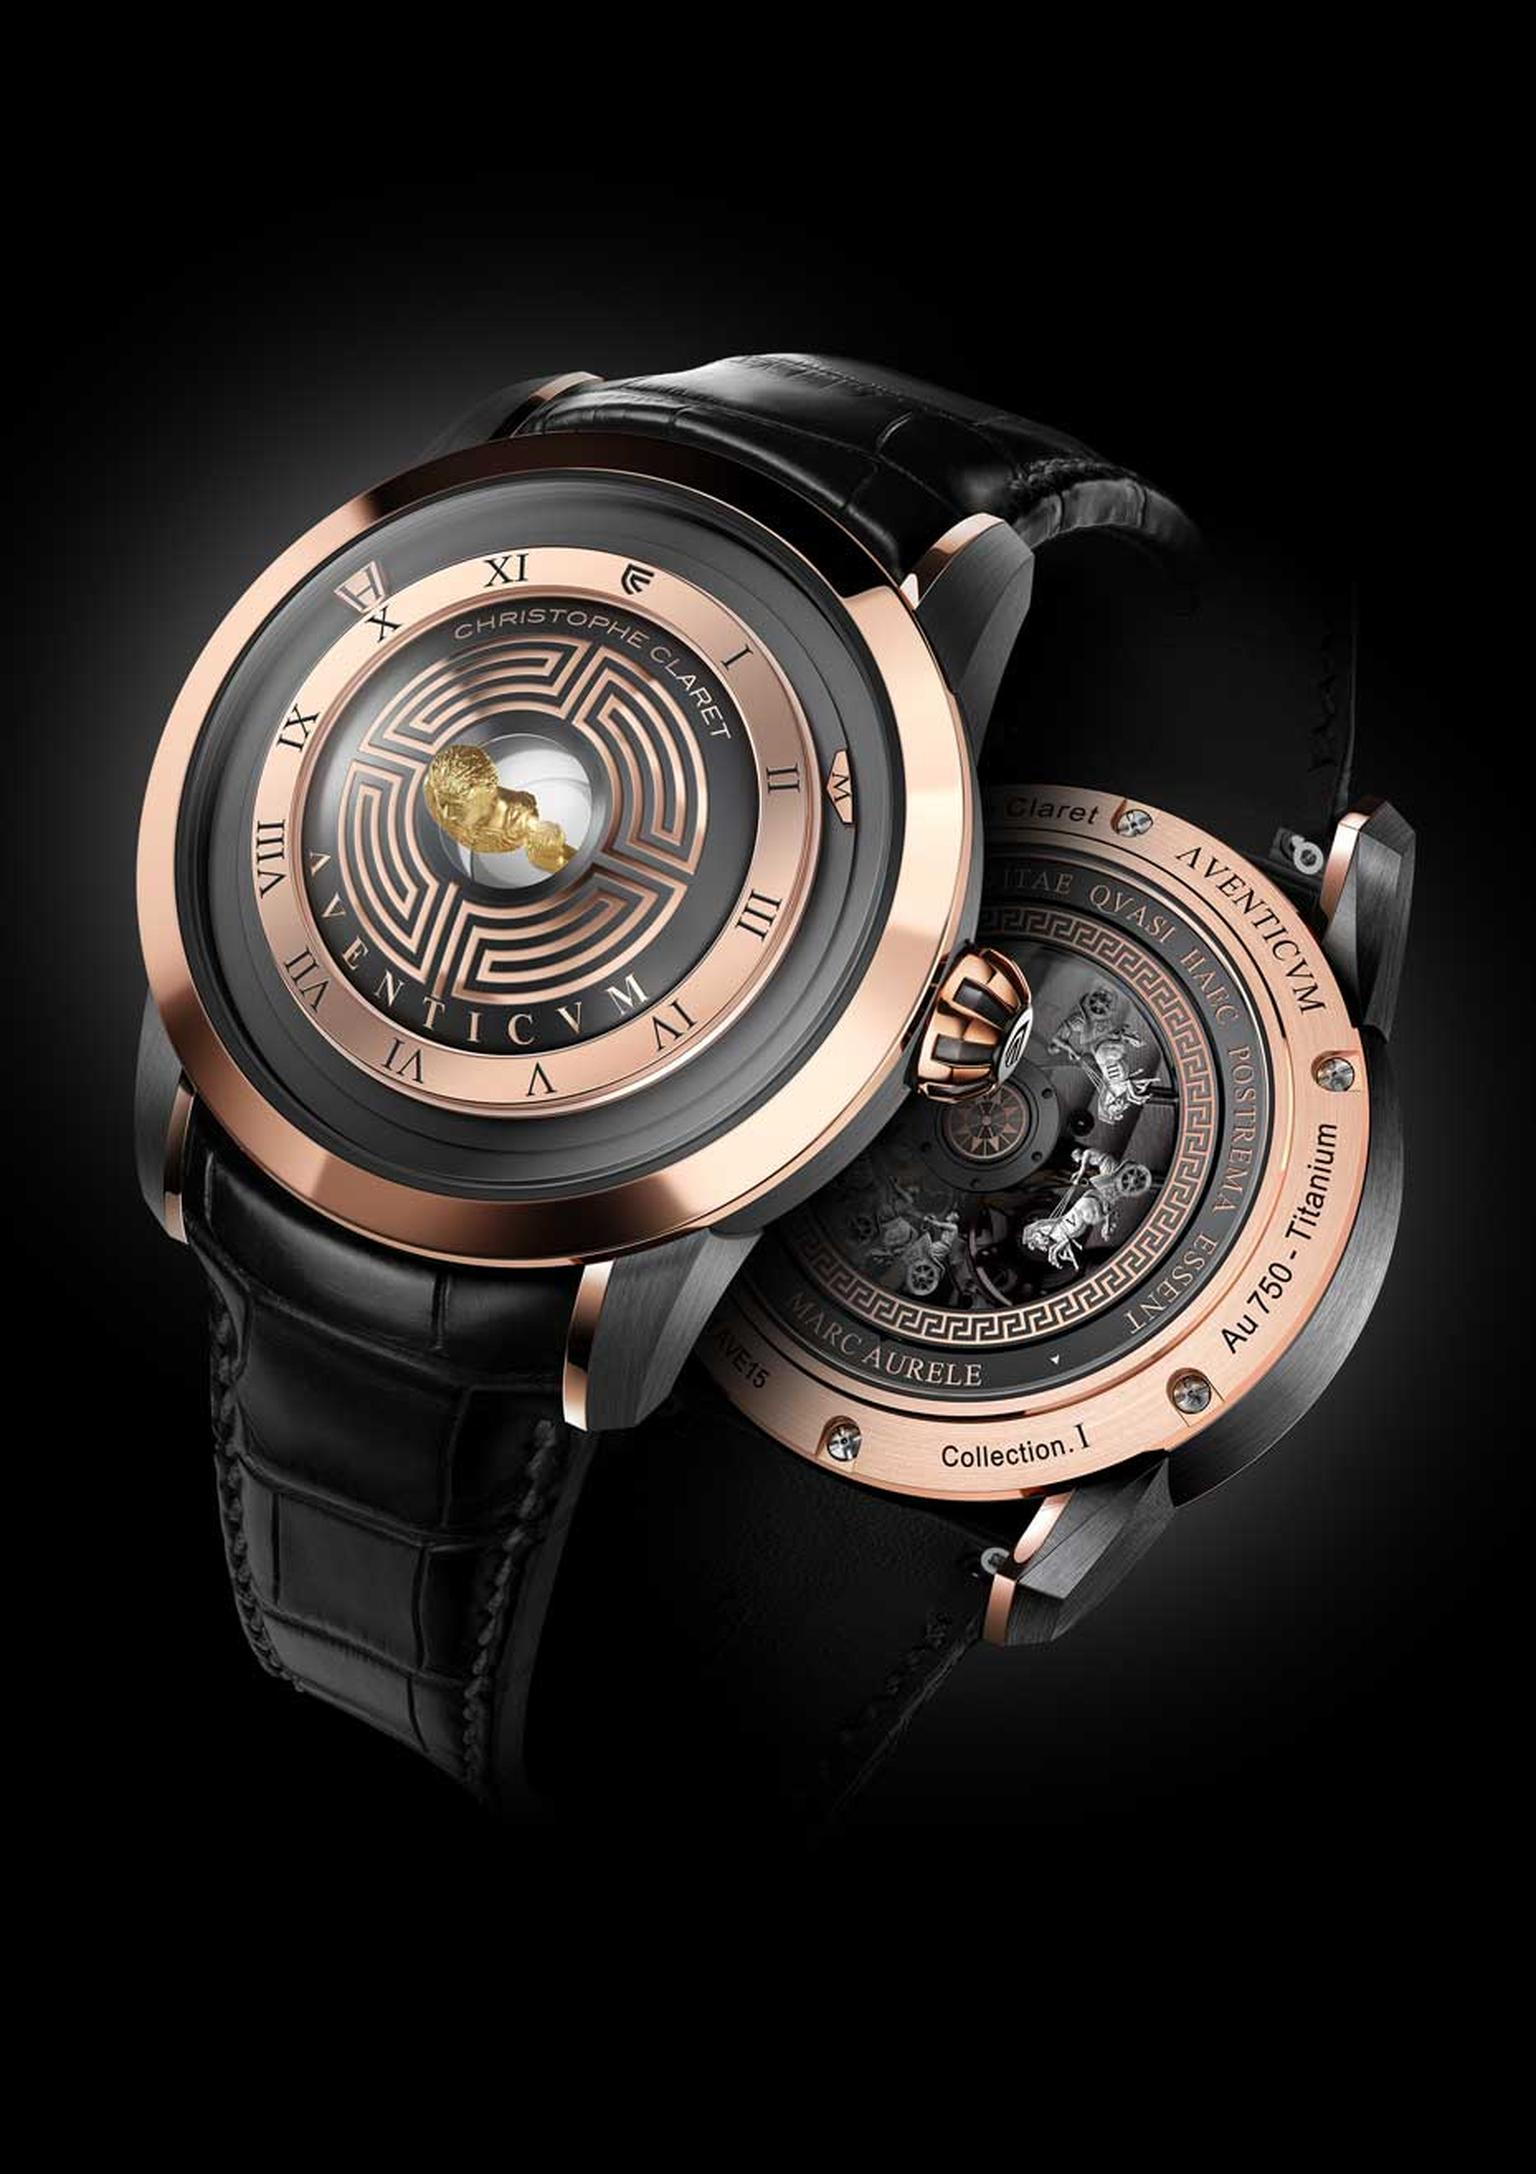 The Christophe Claret Aventicum watch is dedicated to Roman emperor Marcus Aurelius.